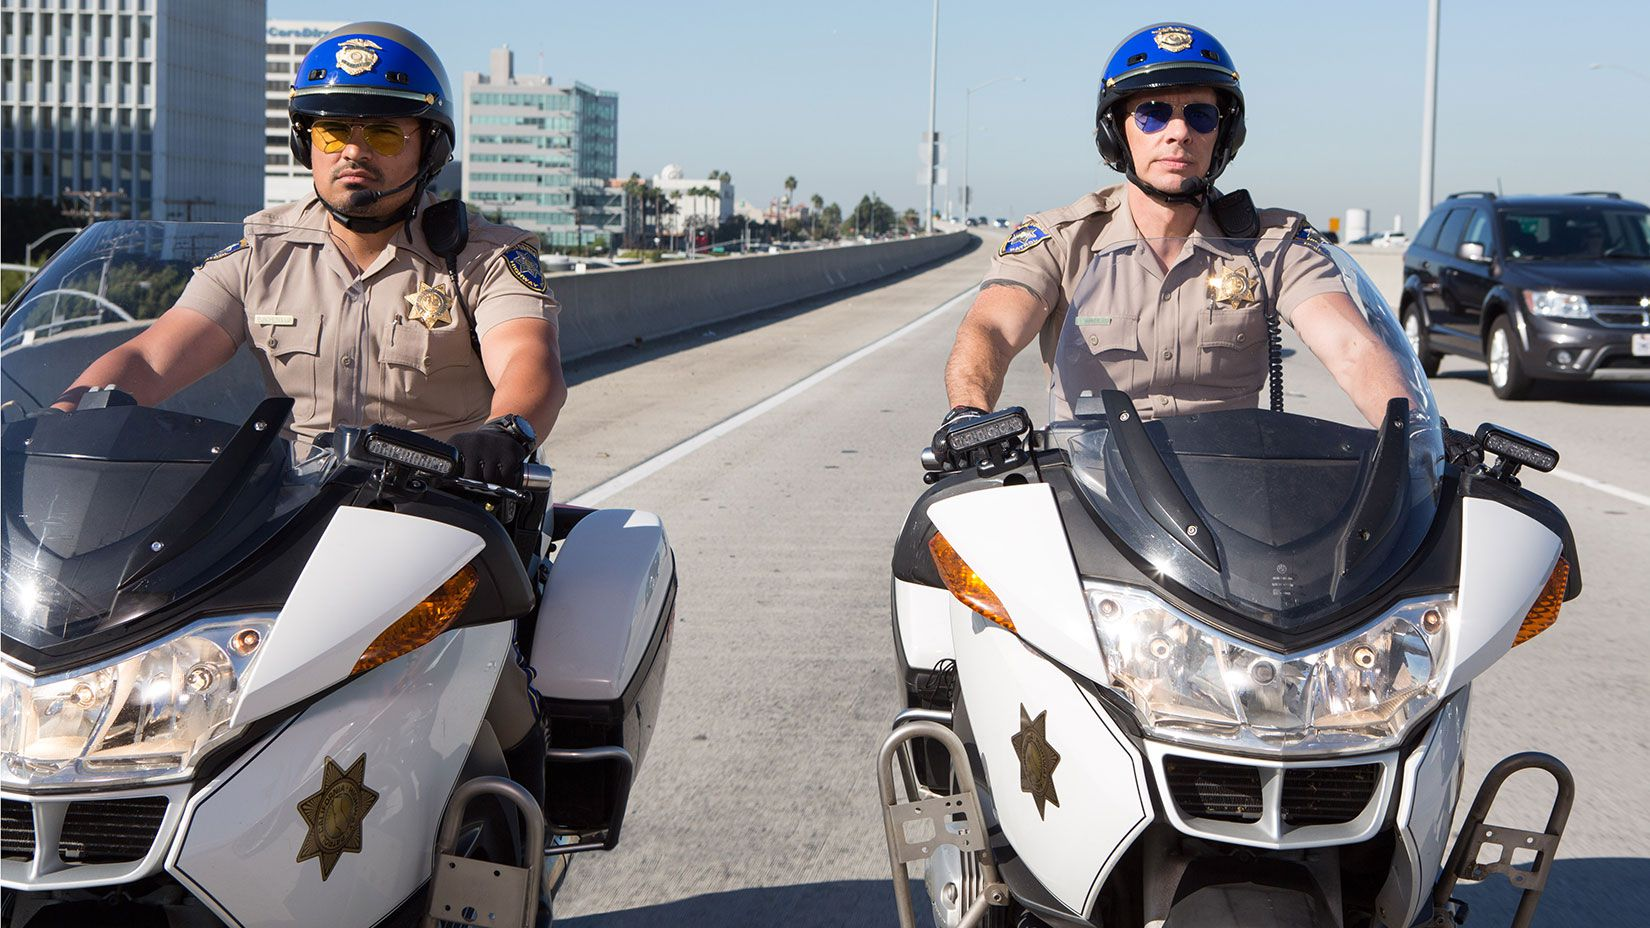 """<strong>Actor Dax Shepard:</strong> Dax Shepard saddled up for the role as CHP officer Jon Baker in the comedy <em>CHiPs</em>. He and co-star Michael Peña are shown here aboard BMW R 1200 RTs. GoSeeTalk interviewed Shepard where he stated, """"My first love is motorsports, far above movies or comedy."""""""